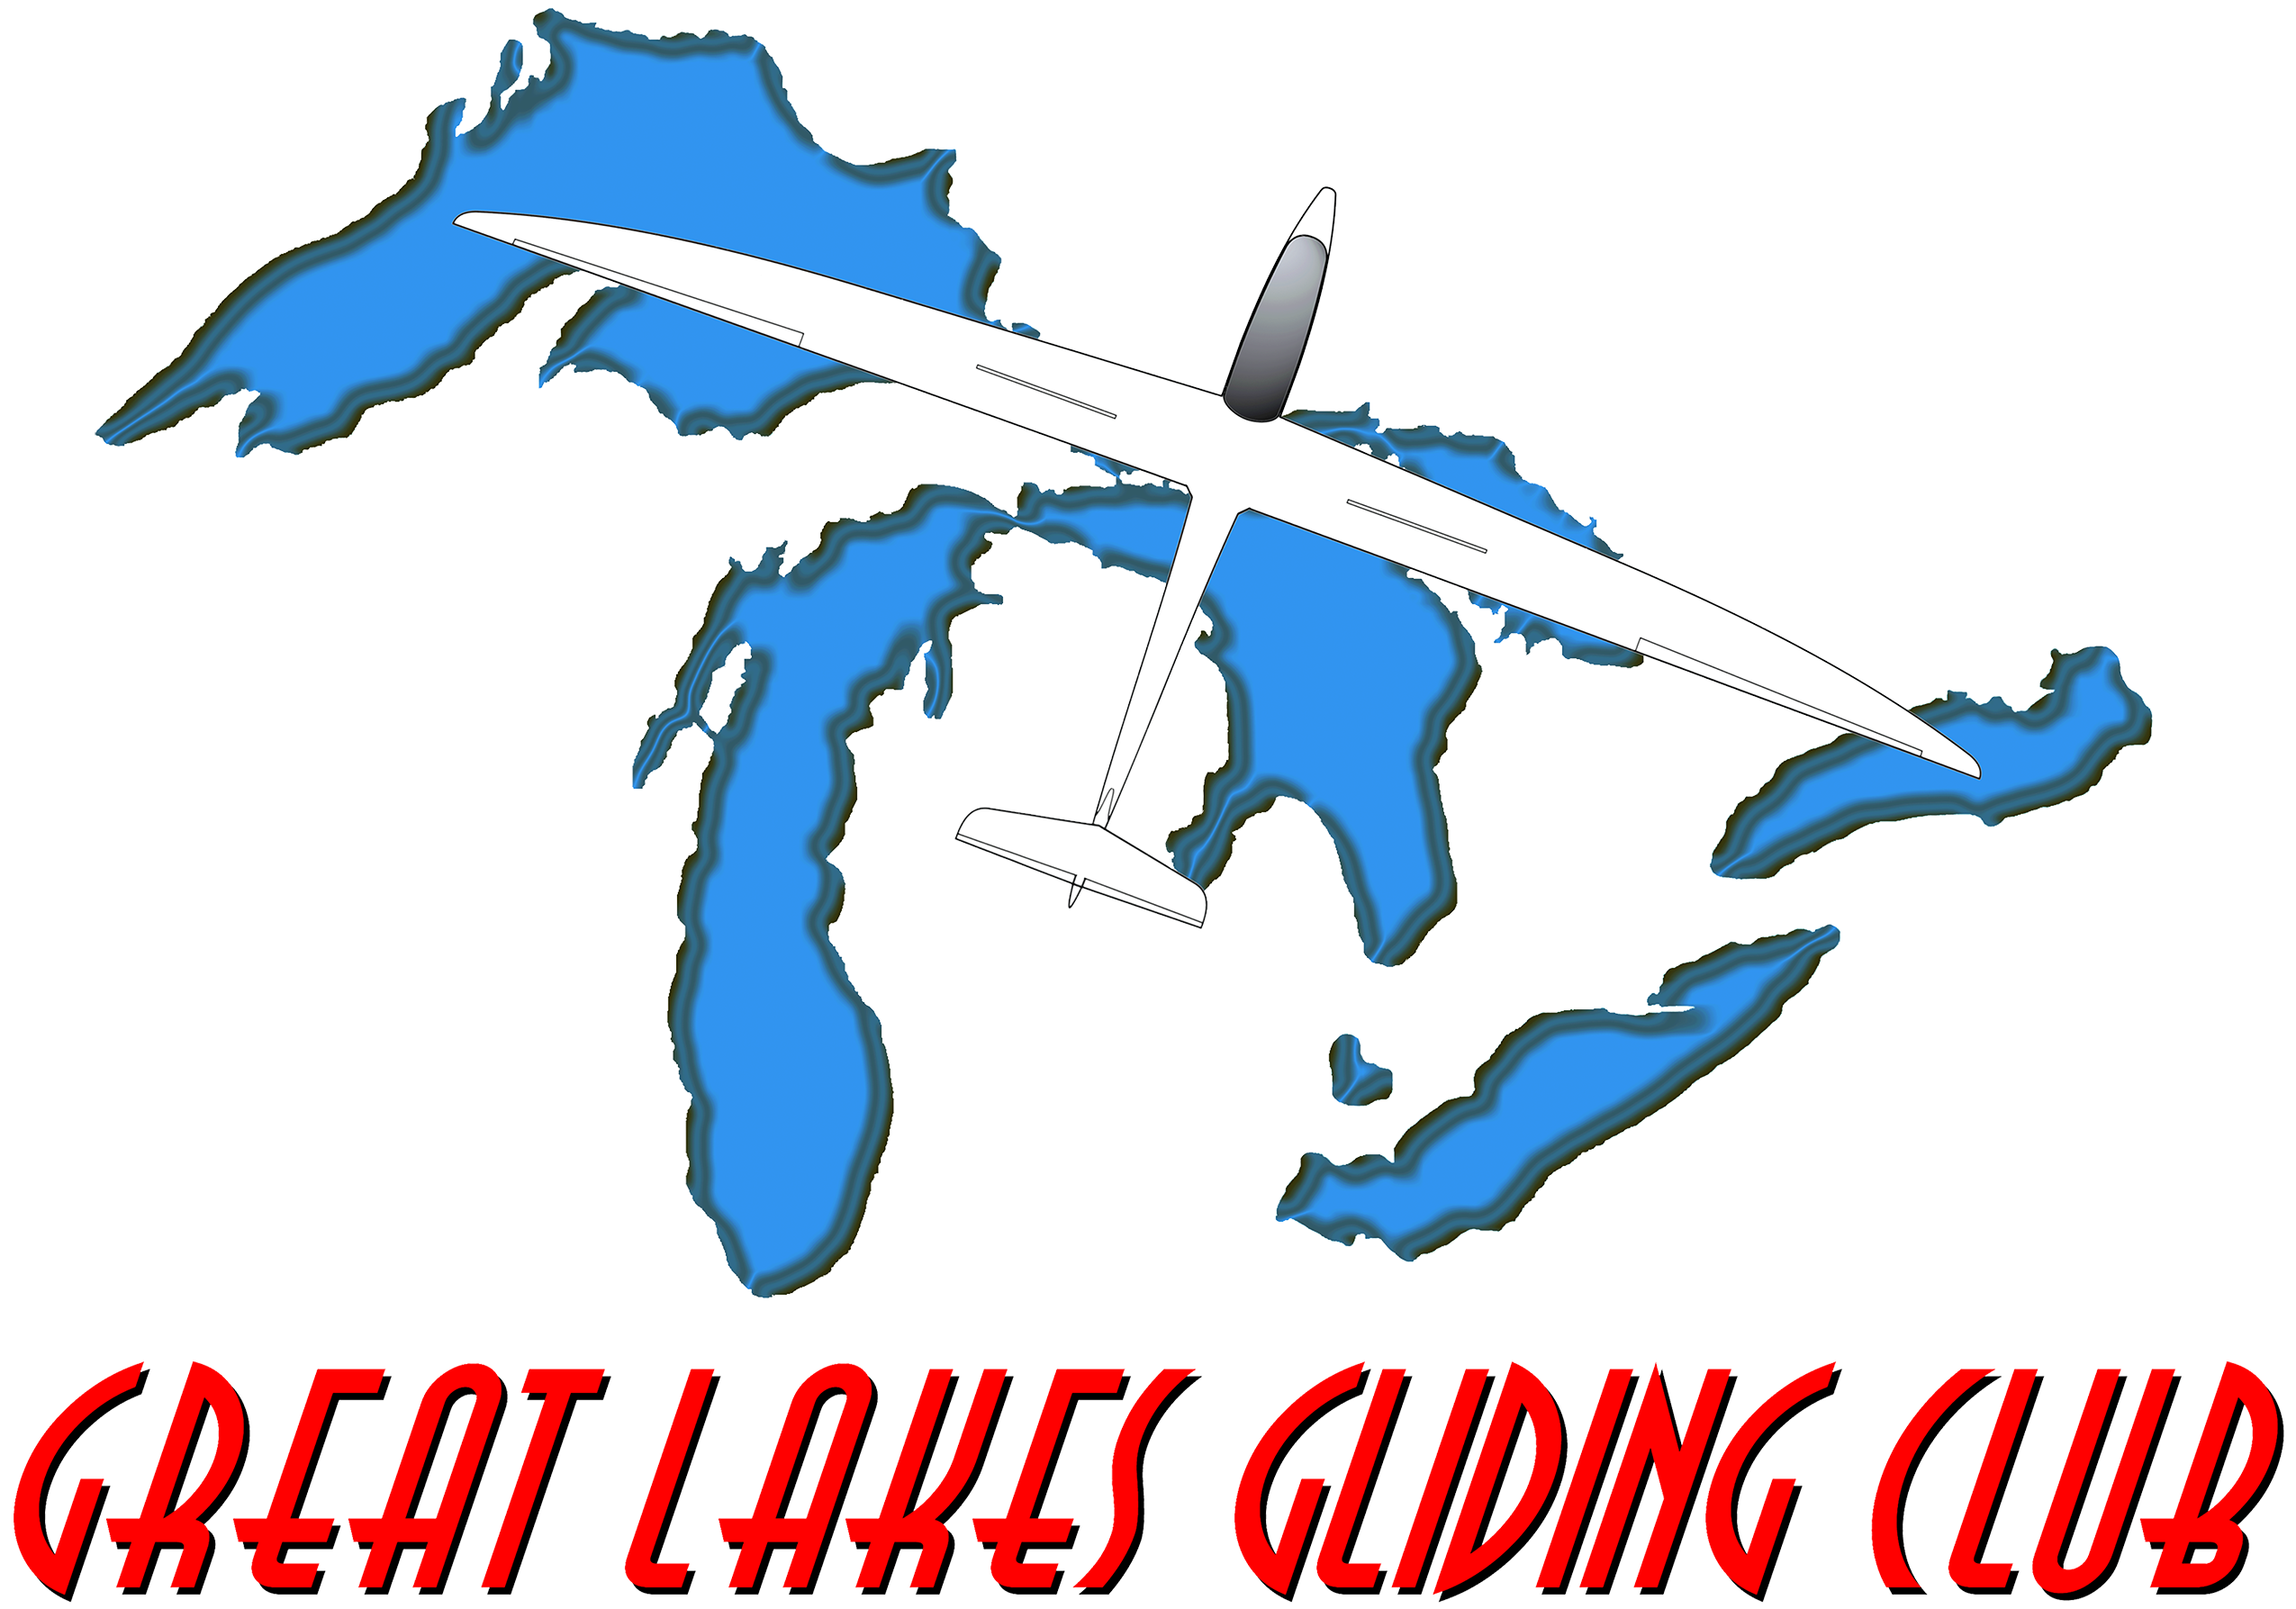 Great Lakes Gliding Club